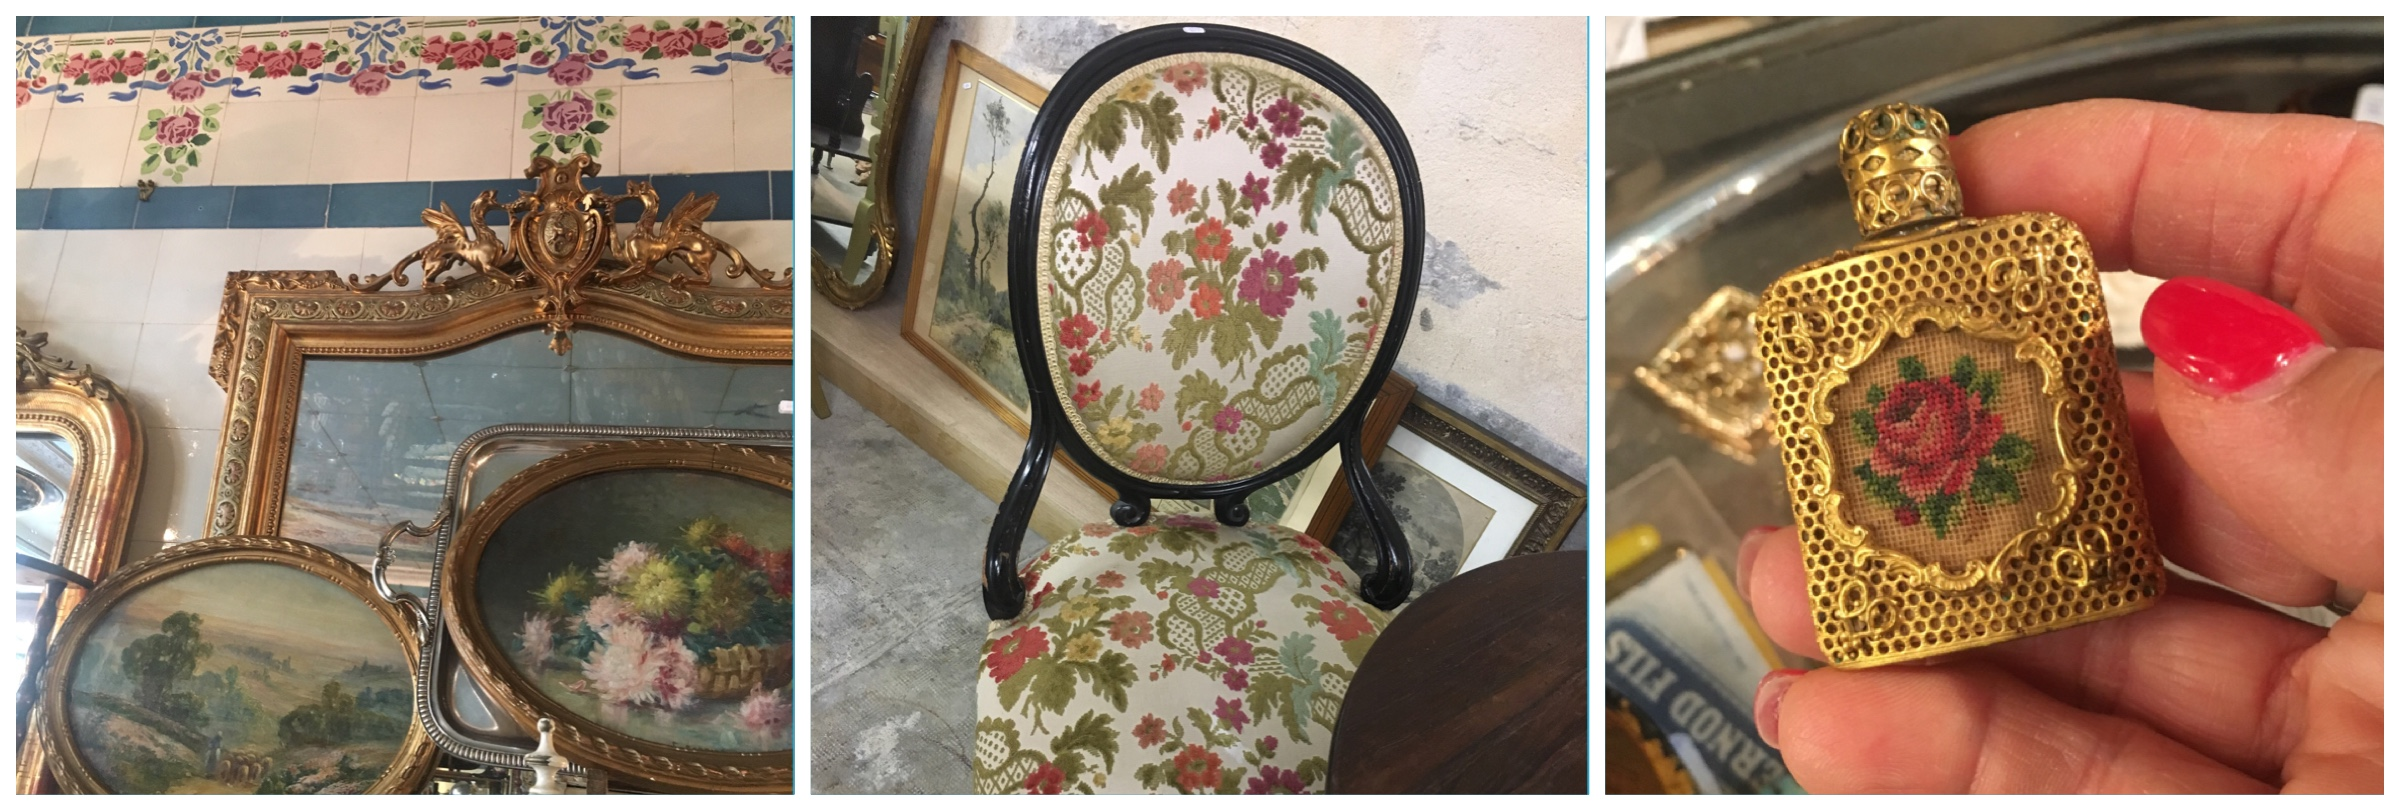 paris-vintage-chair.jpg